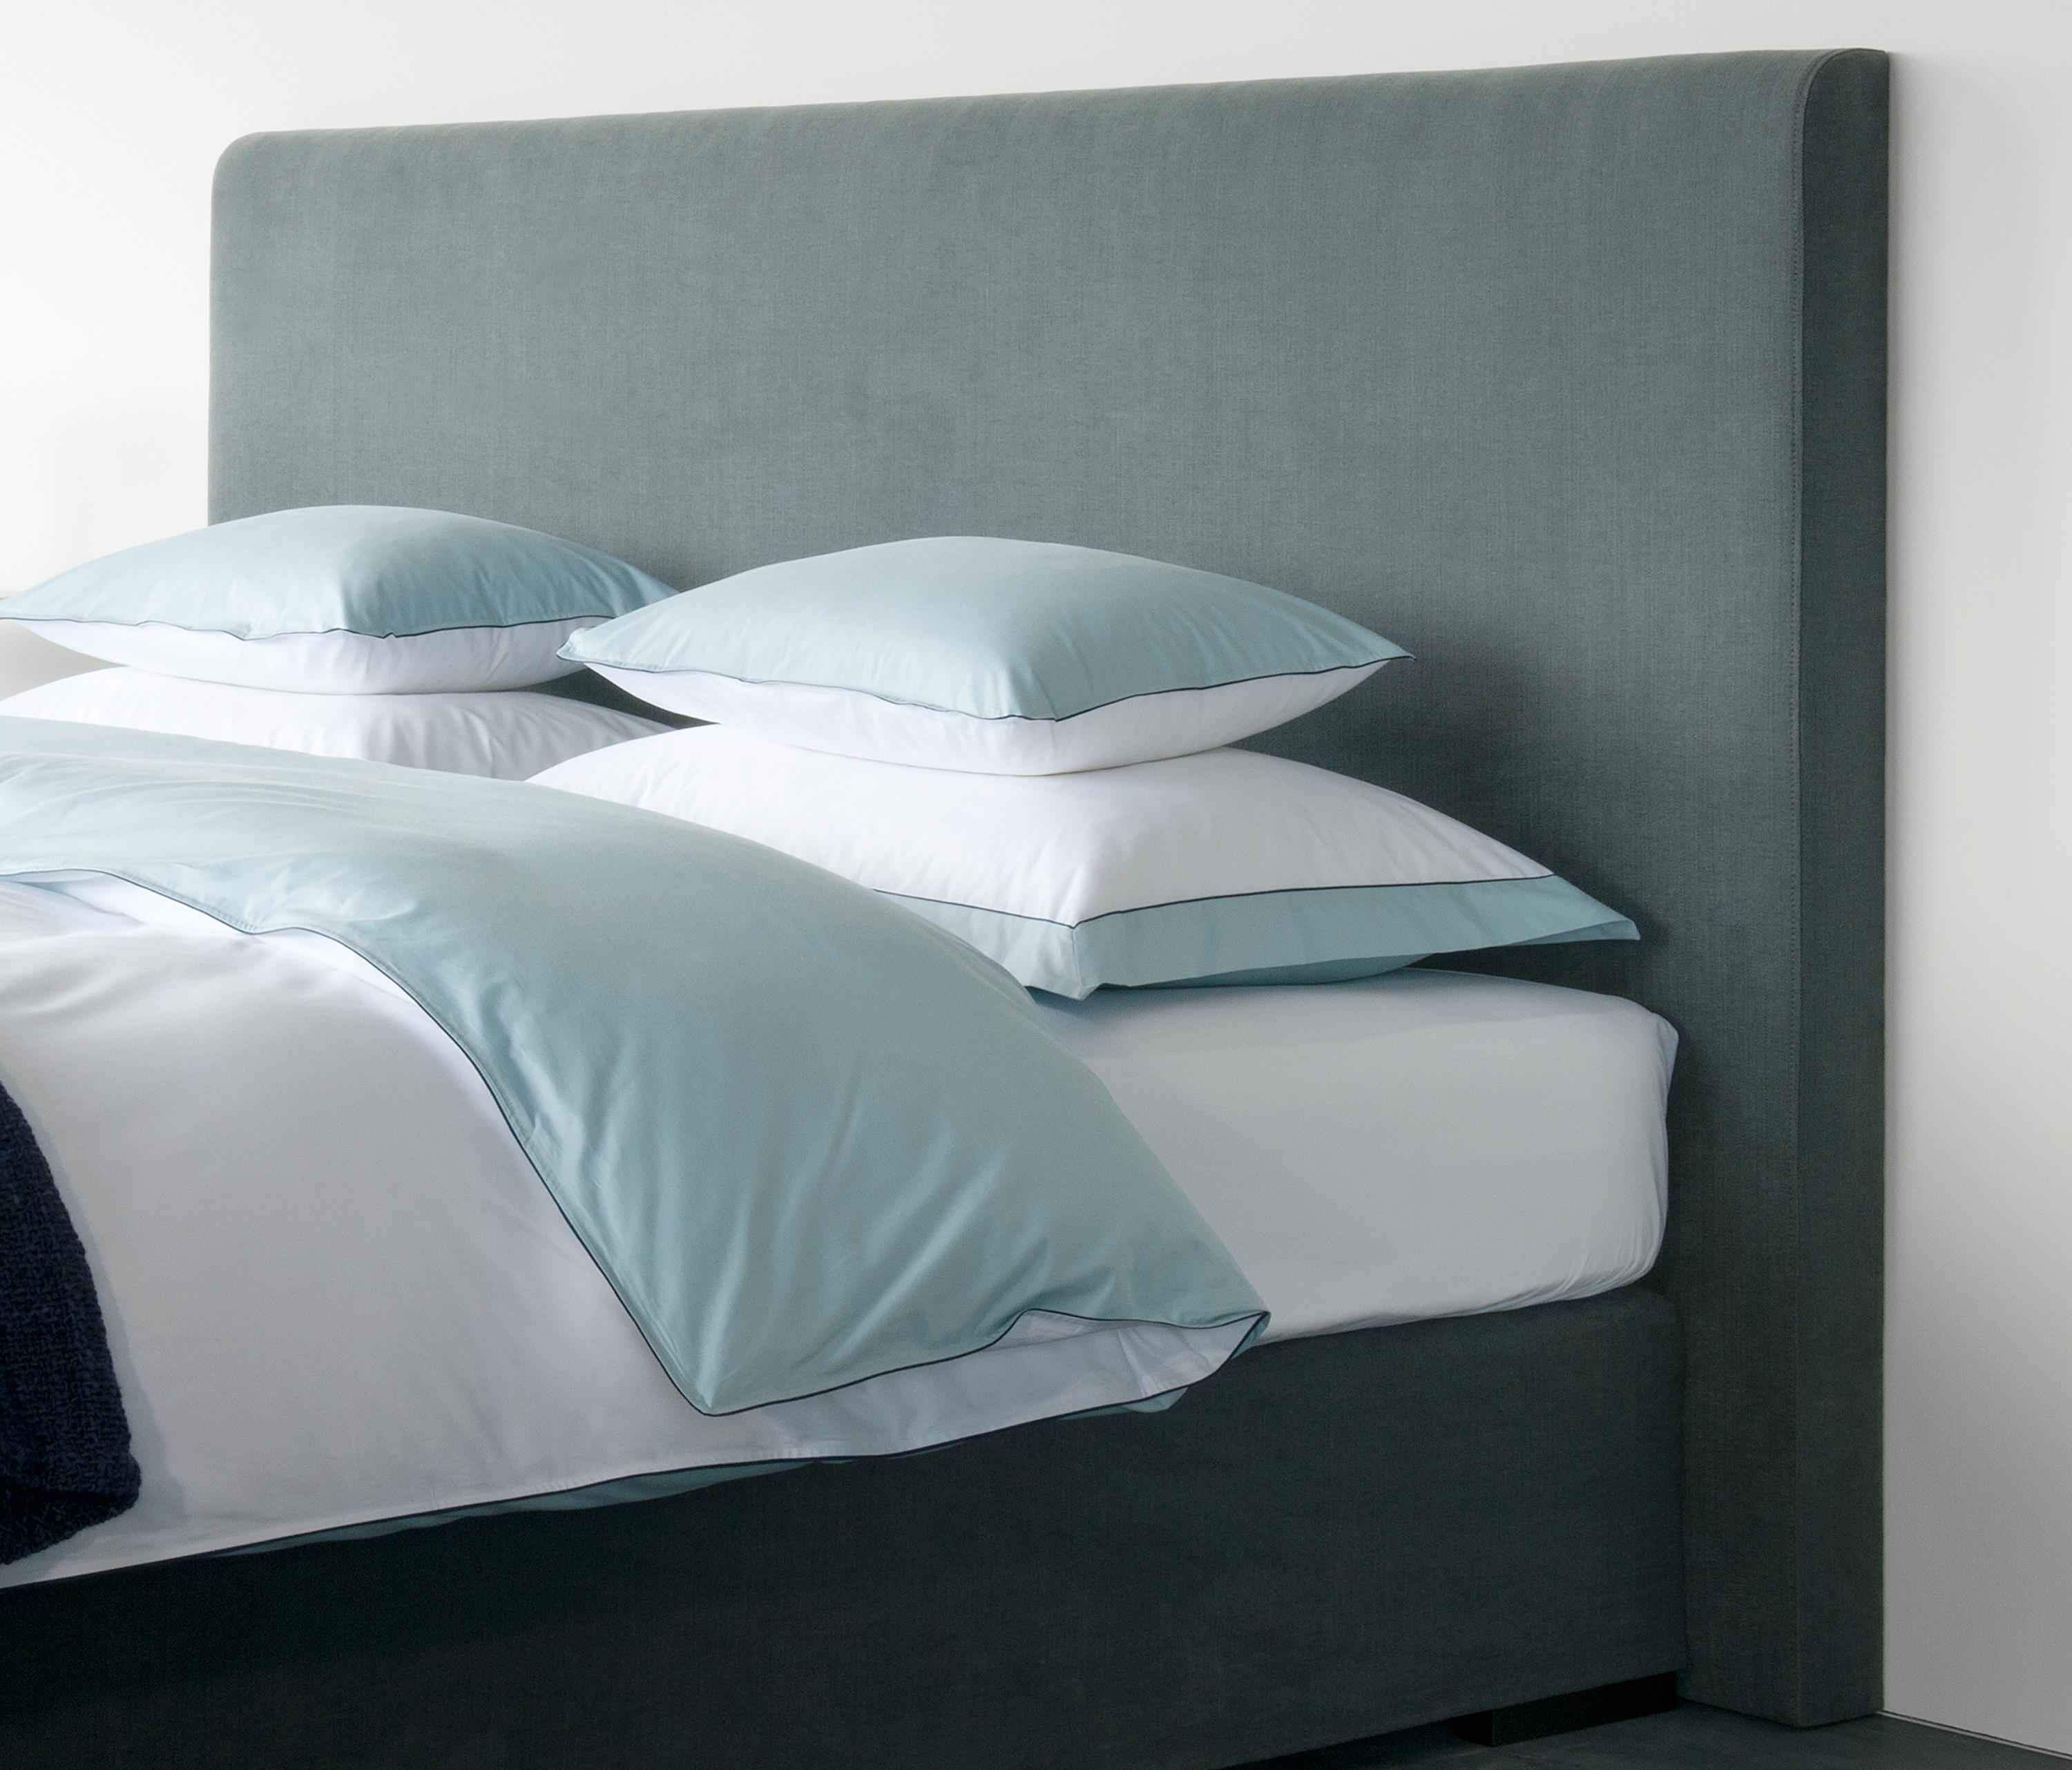 william fountain and headboards headboard beds